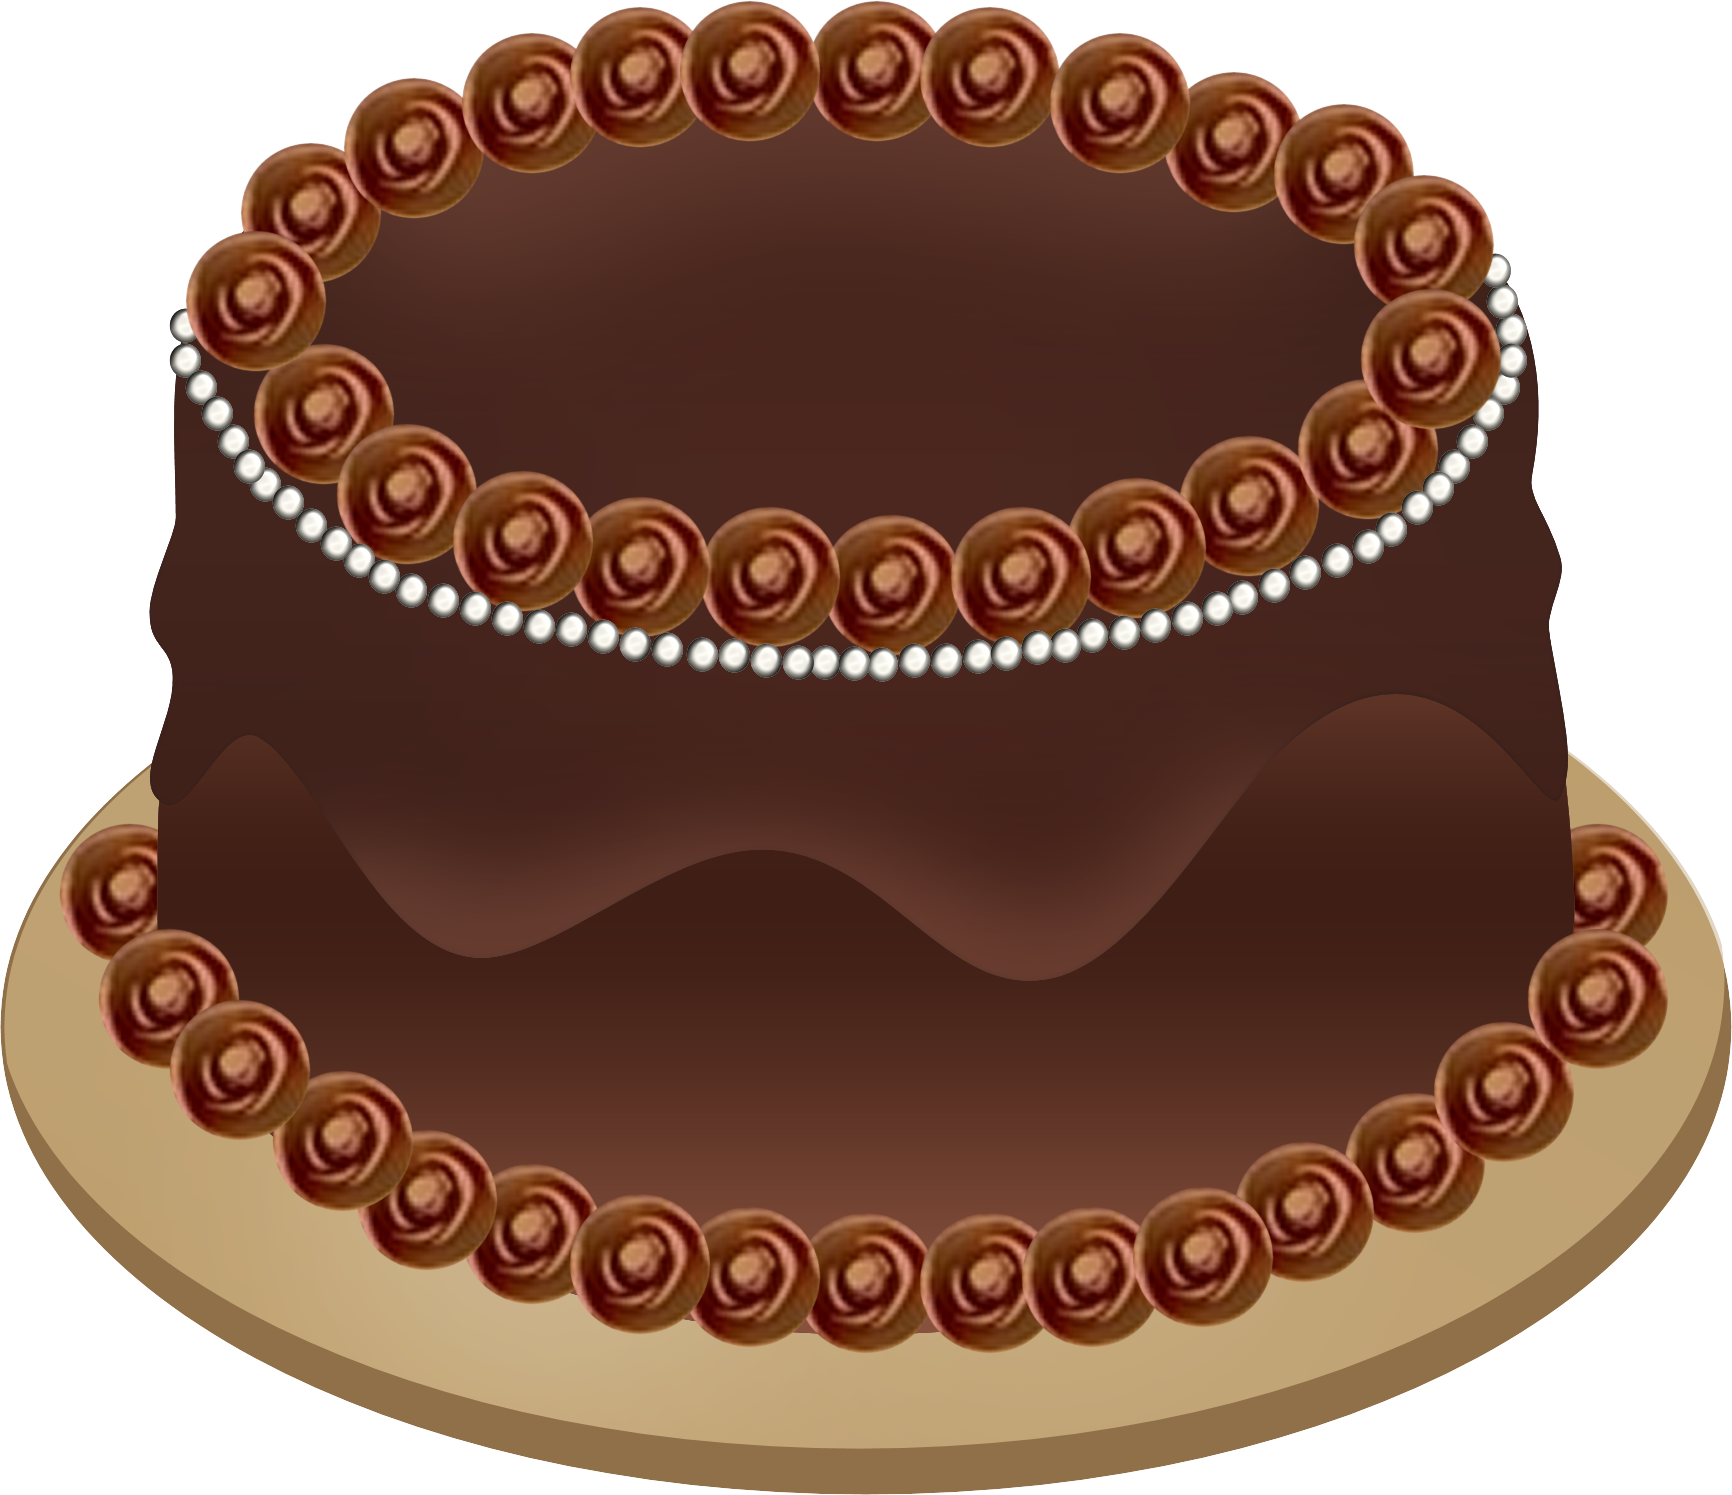 Chocolate cake clipart clip art free Download Chocolate Cake Black And White Danaspai Top Clipart PNG ... clip art free